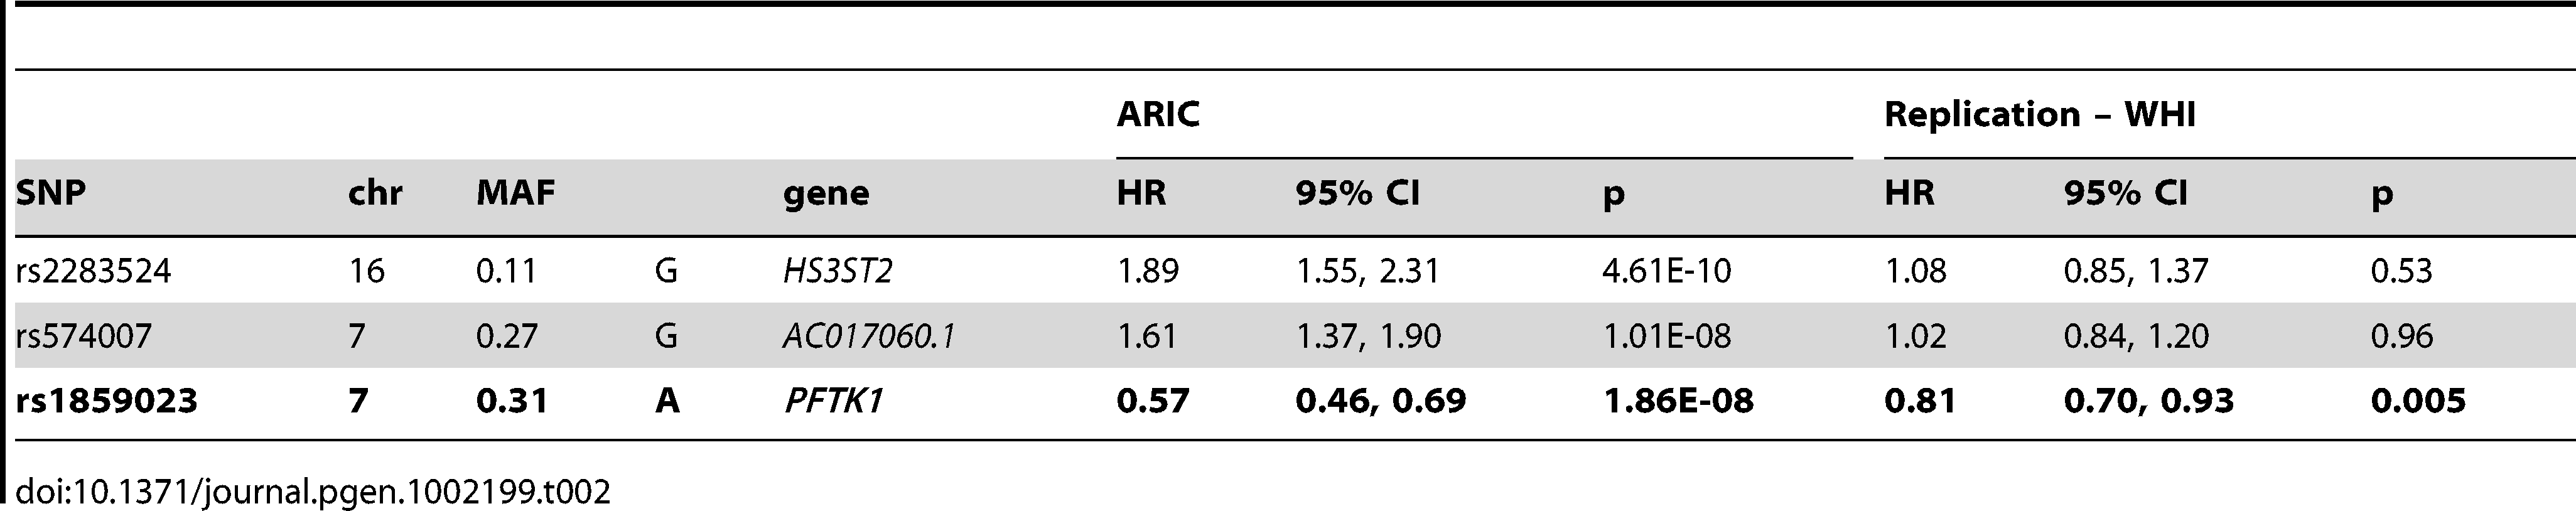 Association results for genome-wide significant variants associated with incident CHD in ARIC African Americans and replication results in WHI.